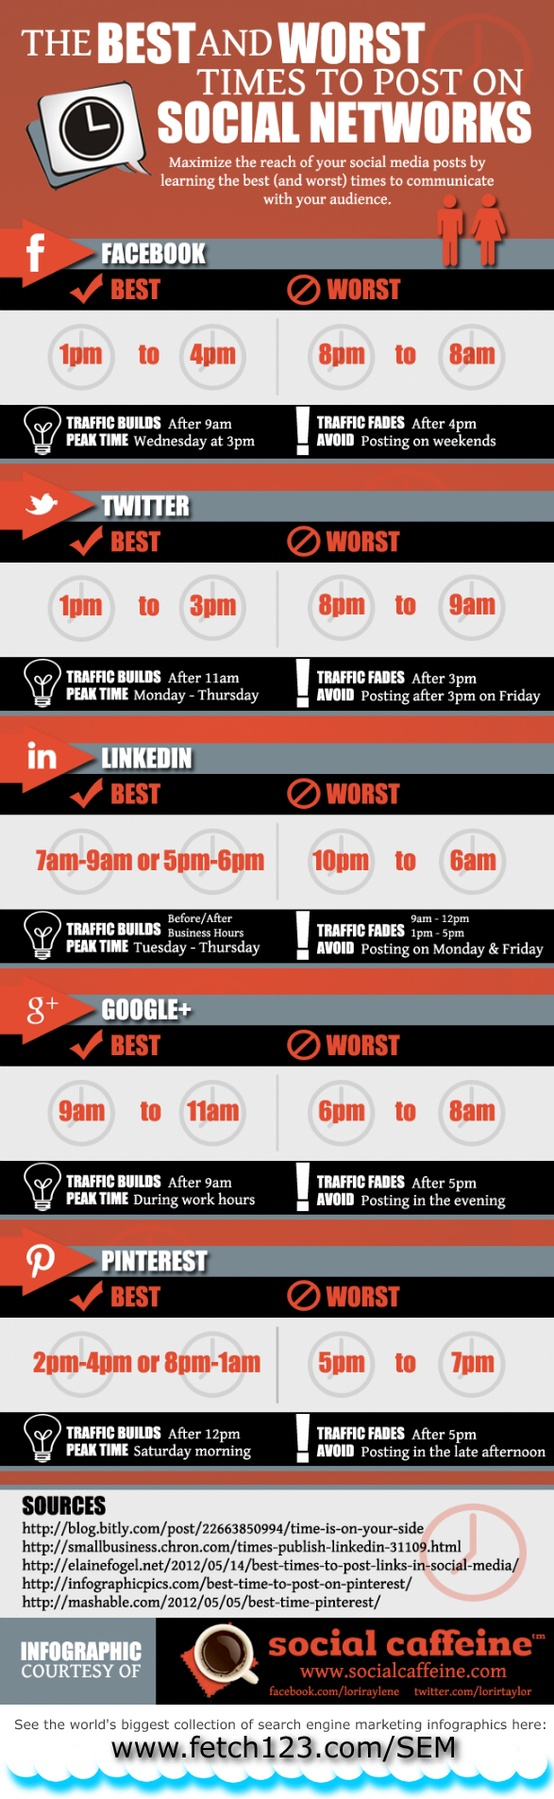 Best and Worst times to post Social Media